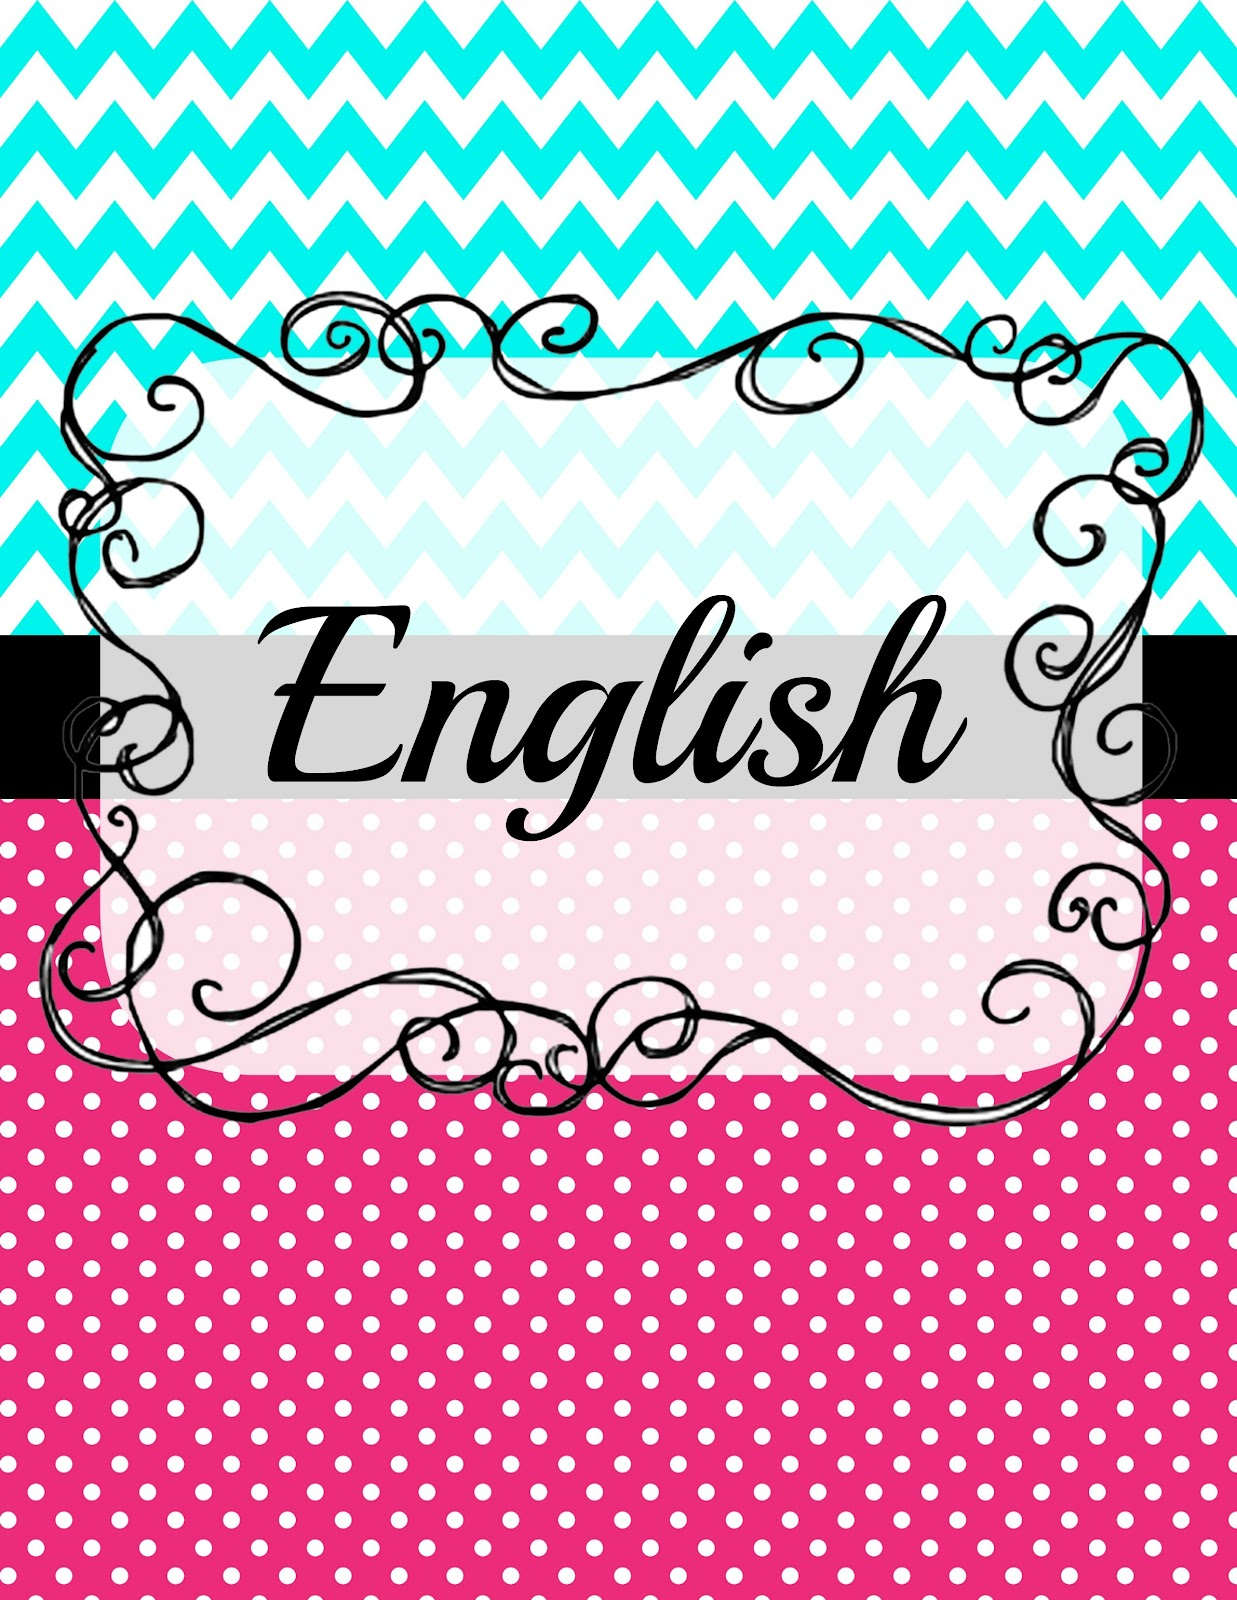 9 Best Images of Printable Binder Covers English - Cute ...